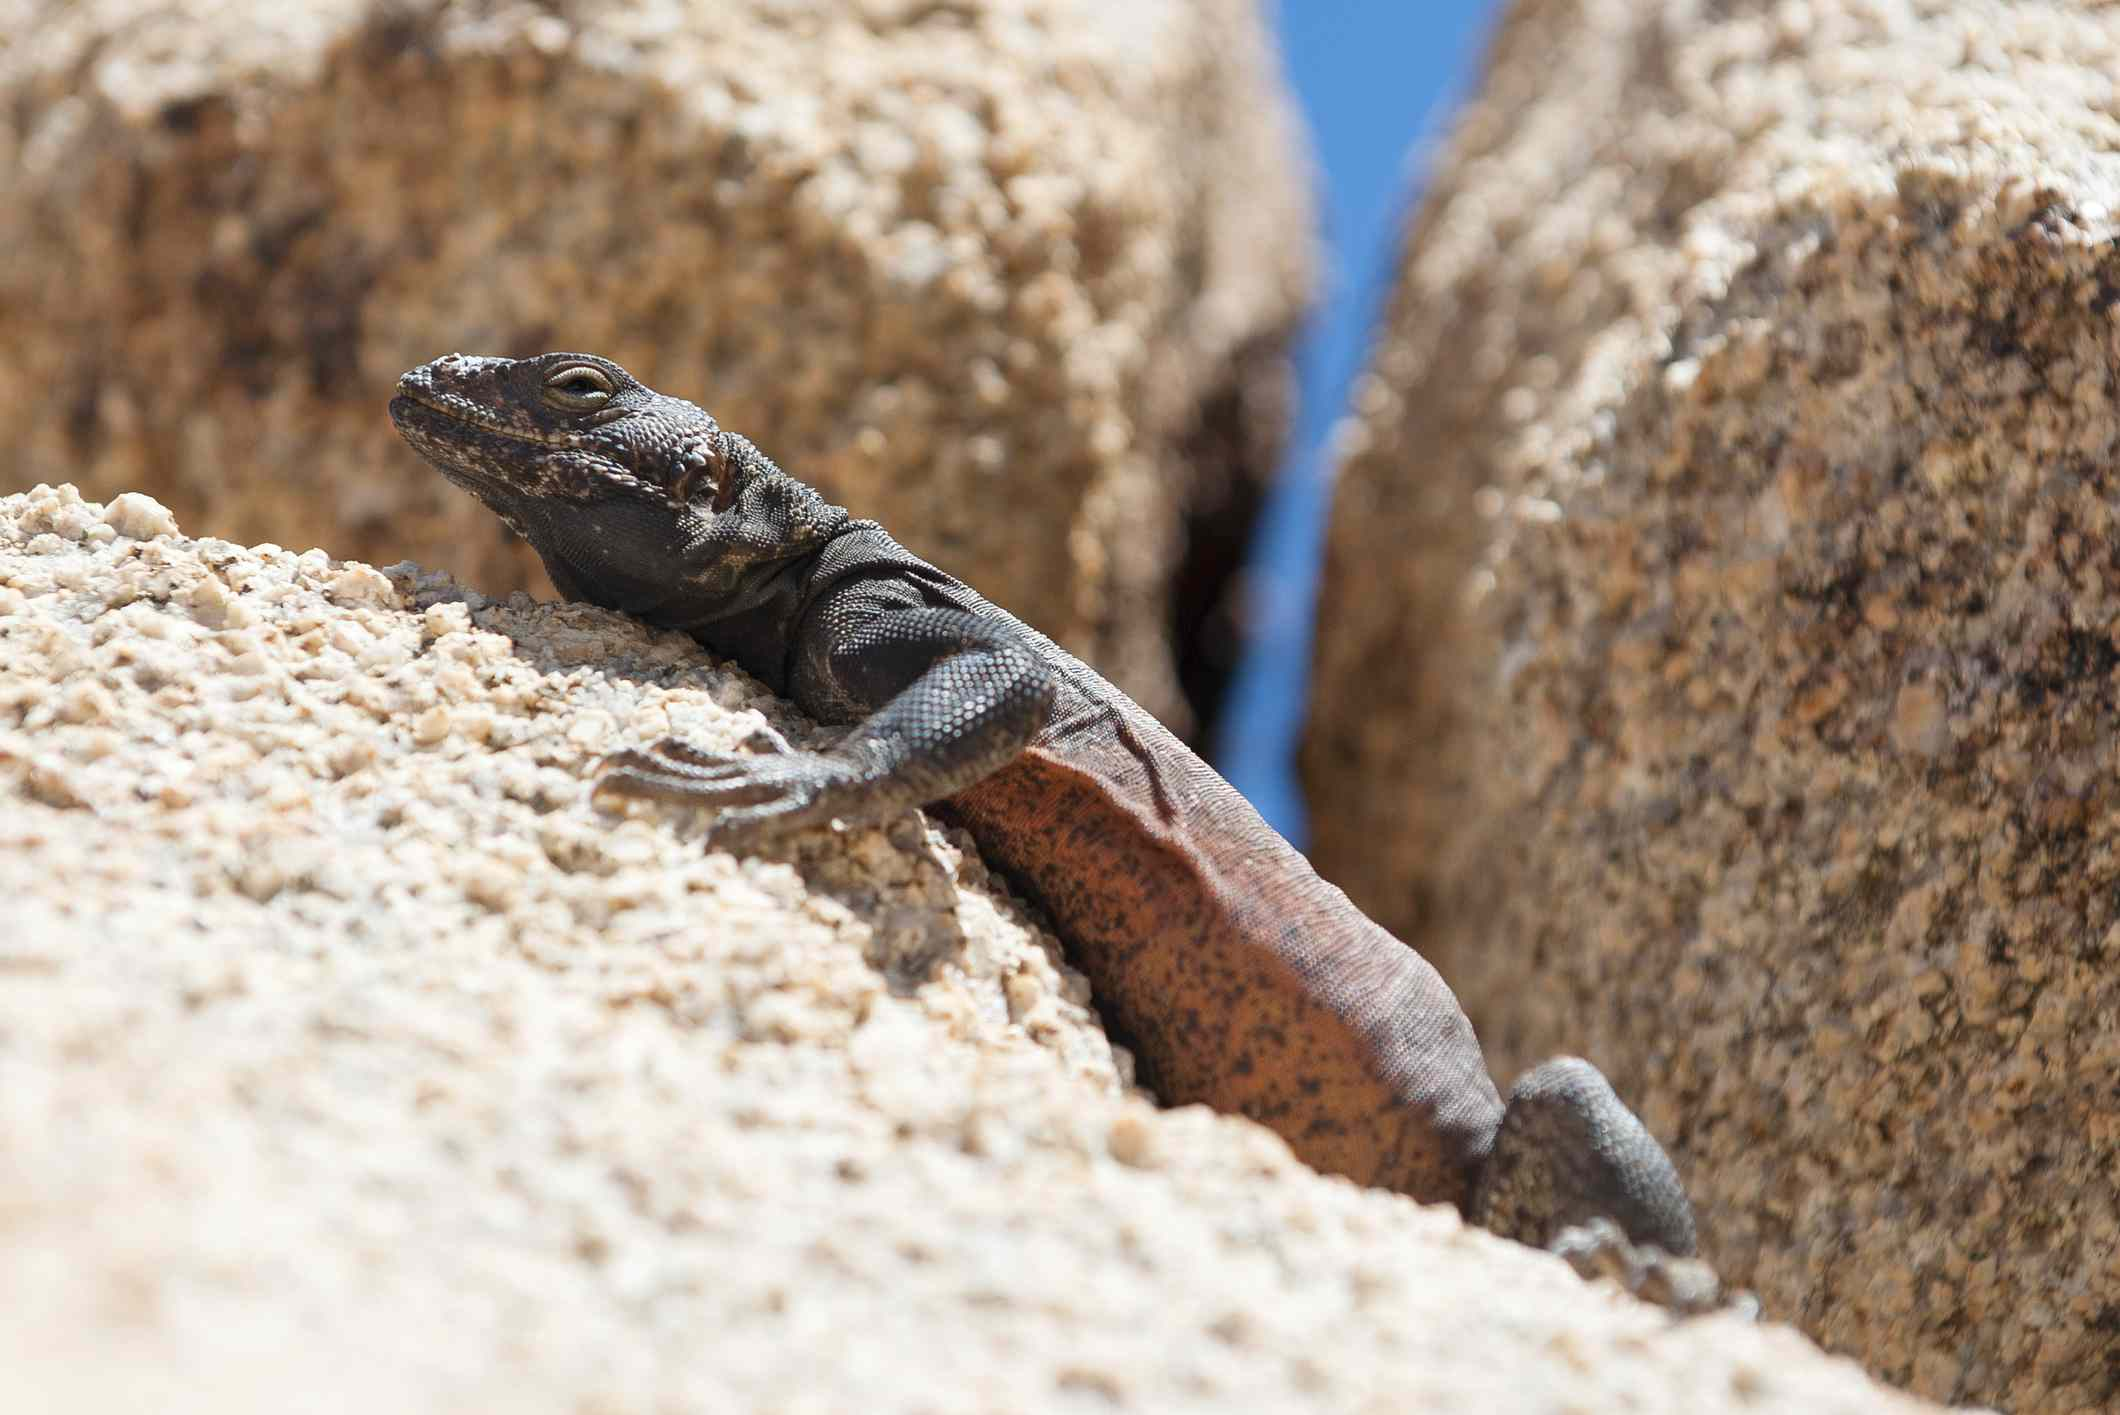 A black and red chuckwalla lizard sits on a light brown rock